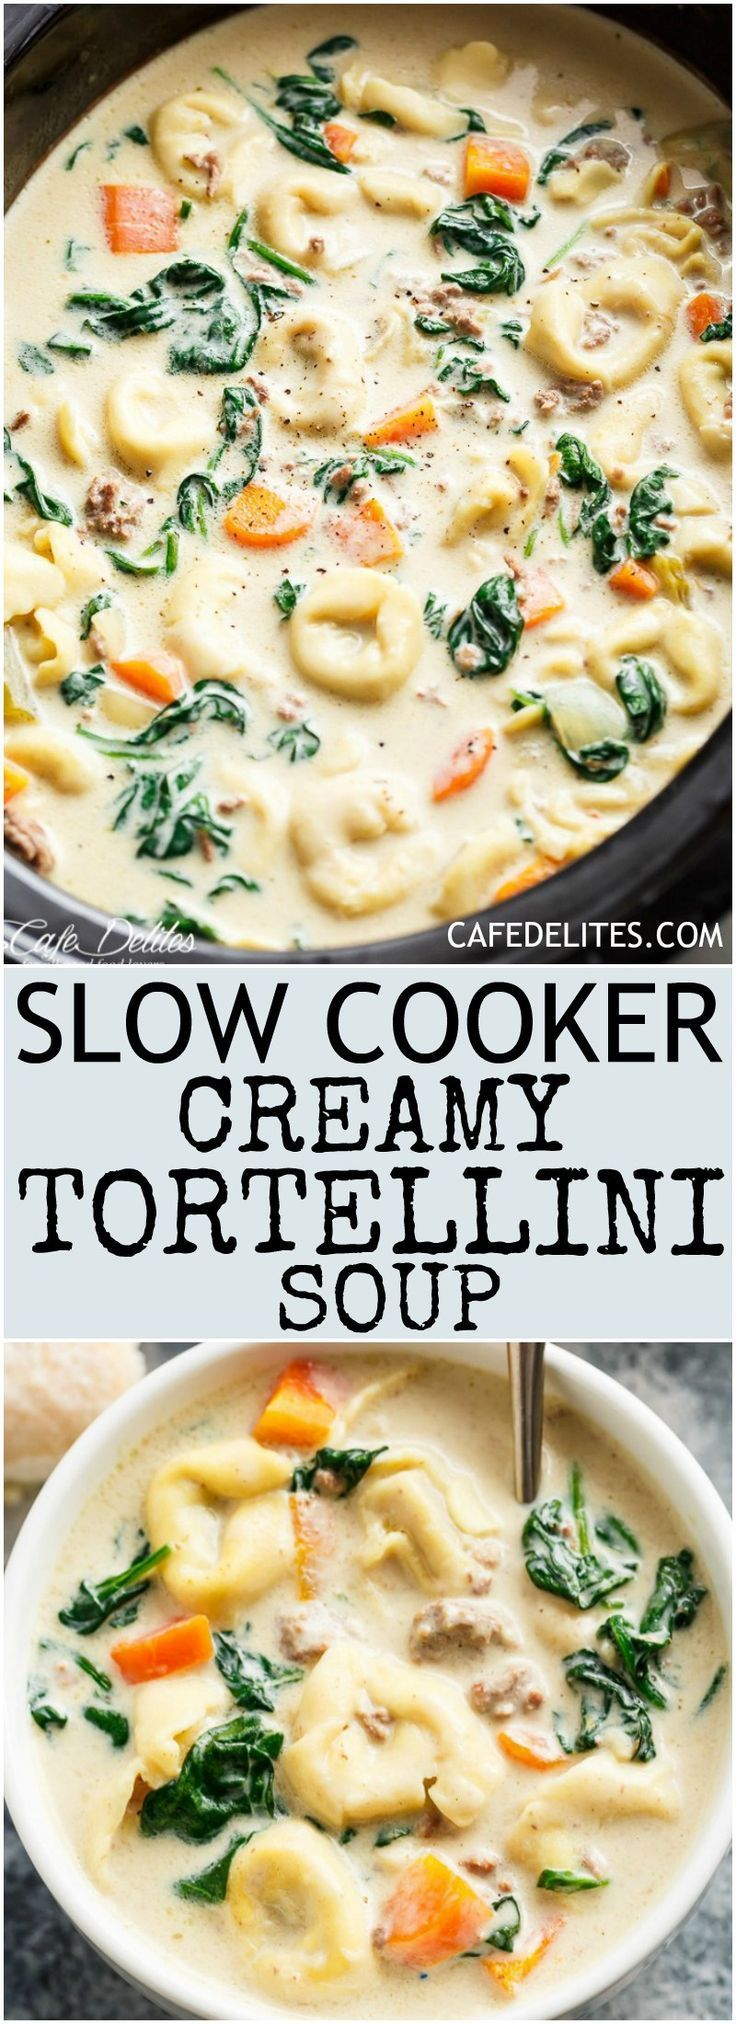 Slow Cooker Creamy Tortellini Soup is pure comfort food, loaded with vegetables, Italian sausage and cheese tortellini! NO flour and NO heavy cream! | cafedelites.com